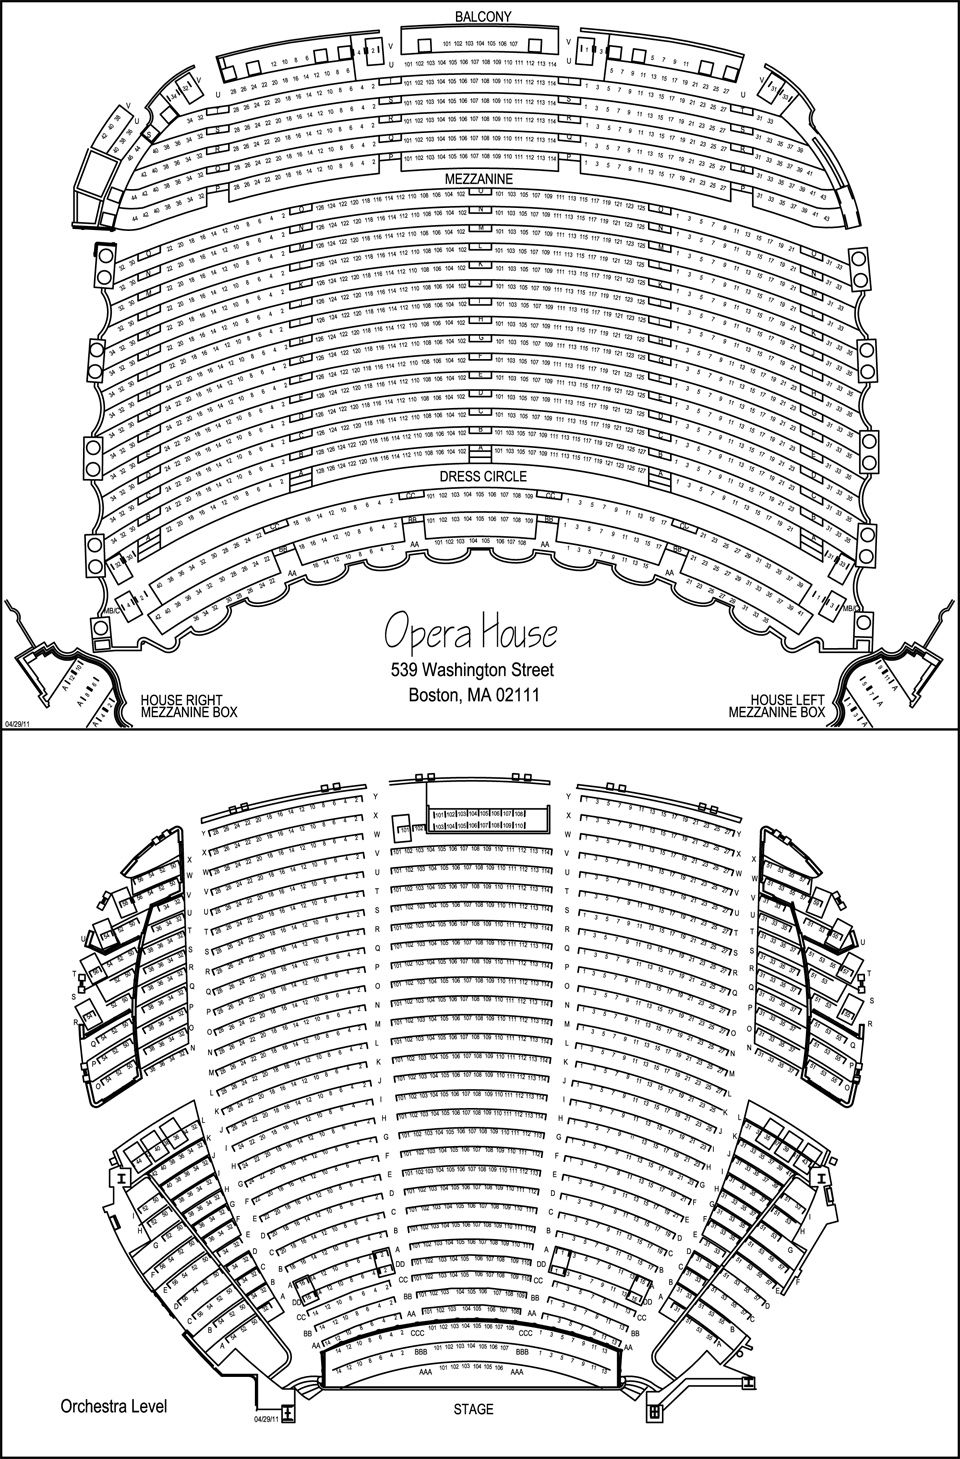 Citizens Bank Opera House seating chart